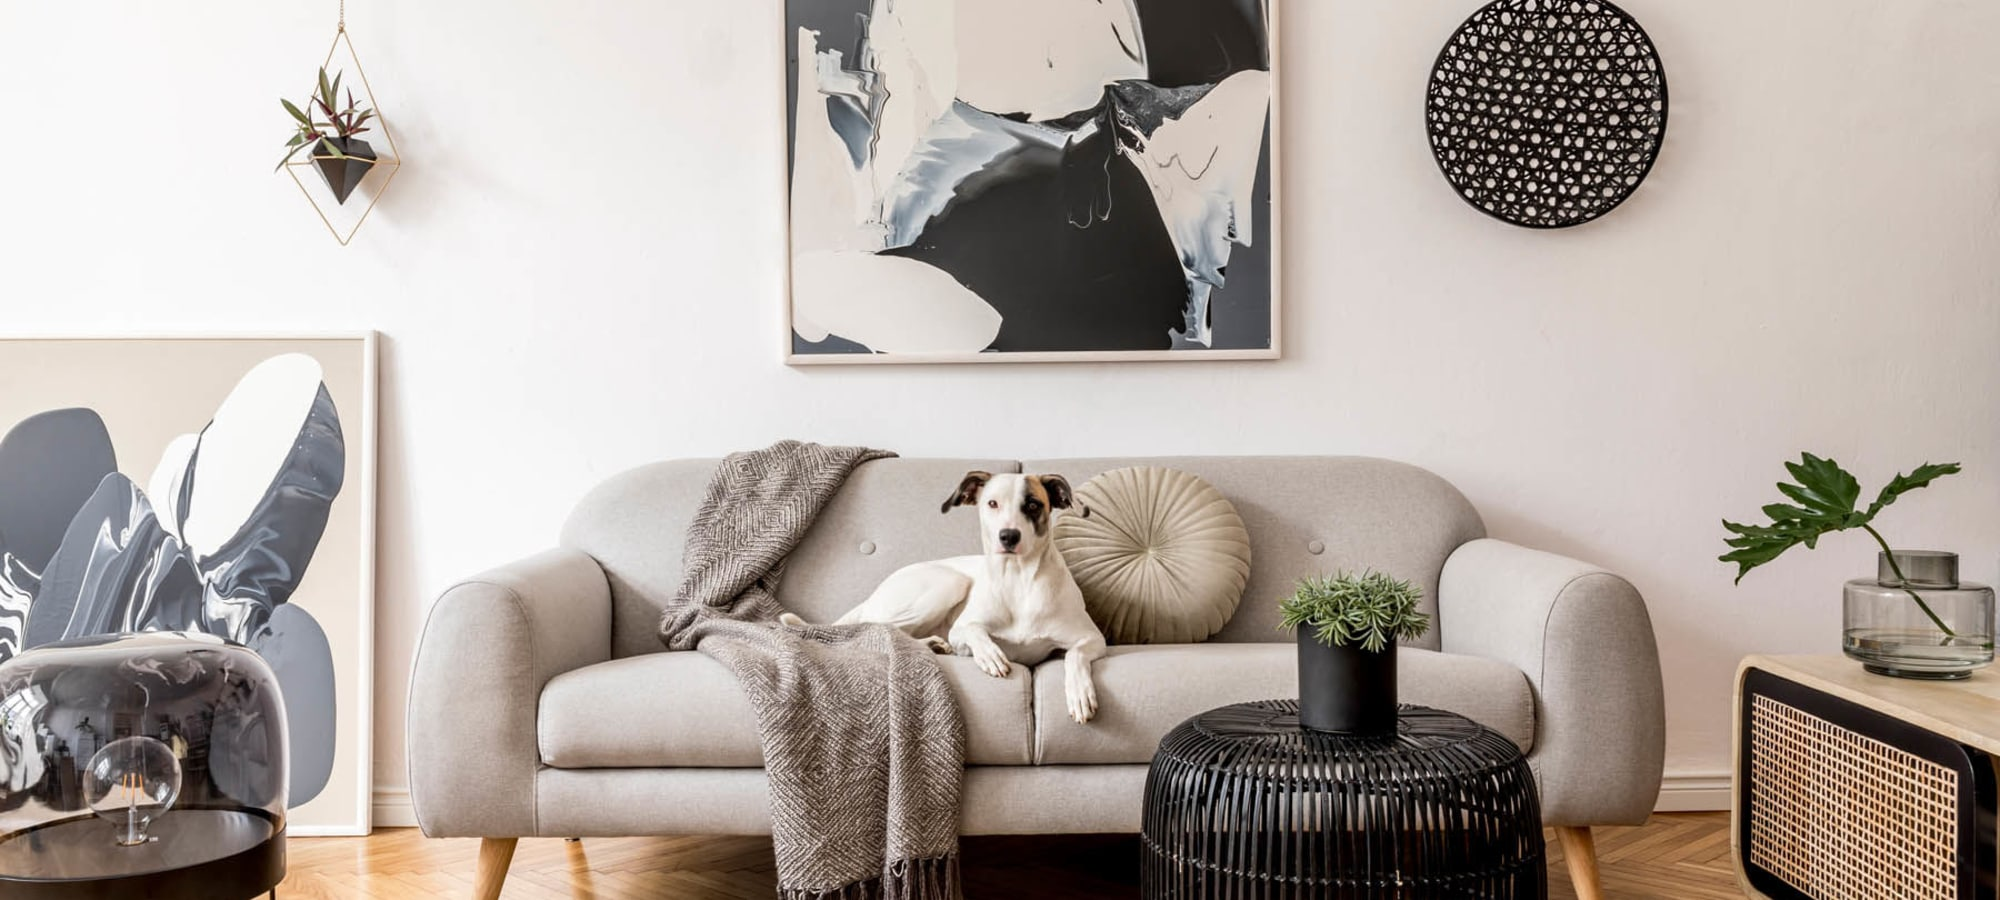 Classically furnished model home's living area with their dog on the couch at Heritage Plaza in San Antonio, Texas